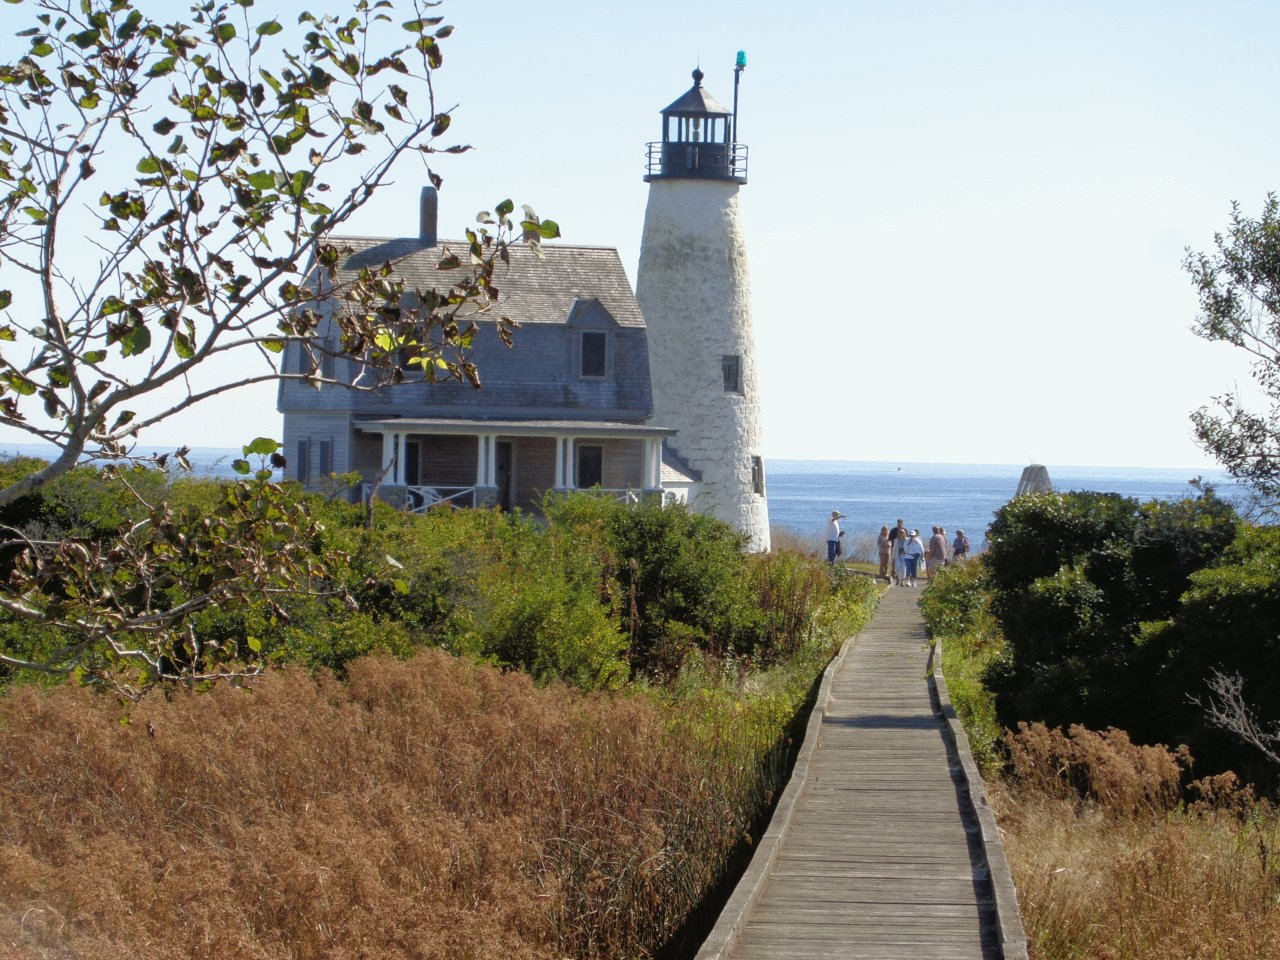 Wood Island Lighthouse Biddeford Pool 2020 All You Need To Know Before You Go With Photos Tripadvisor